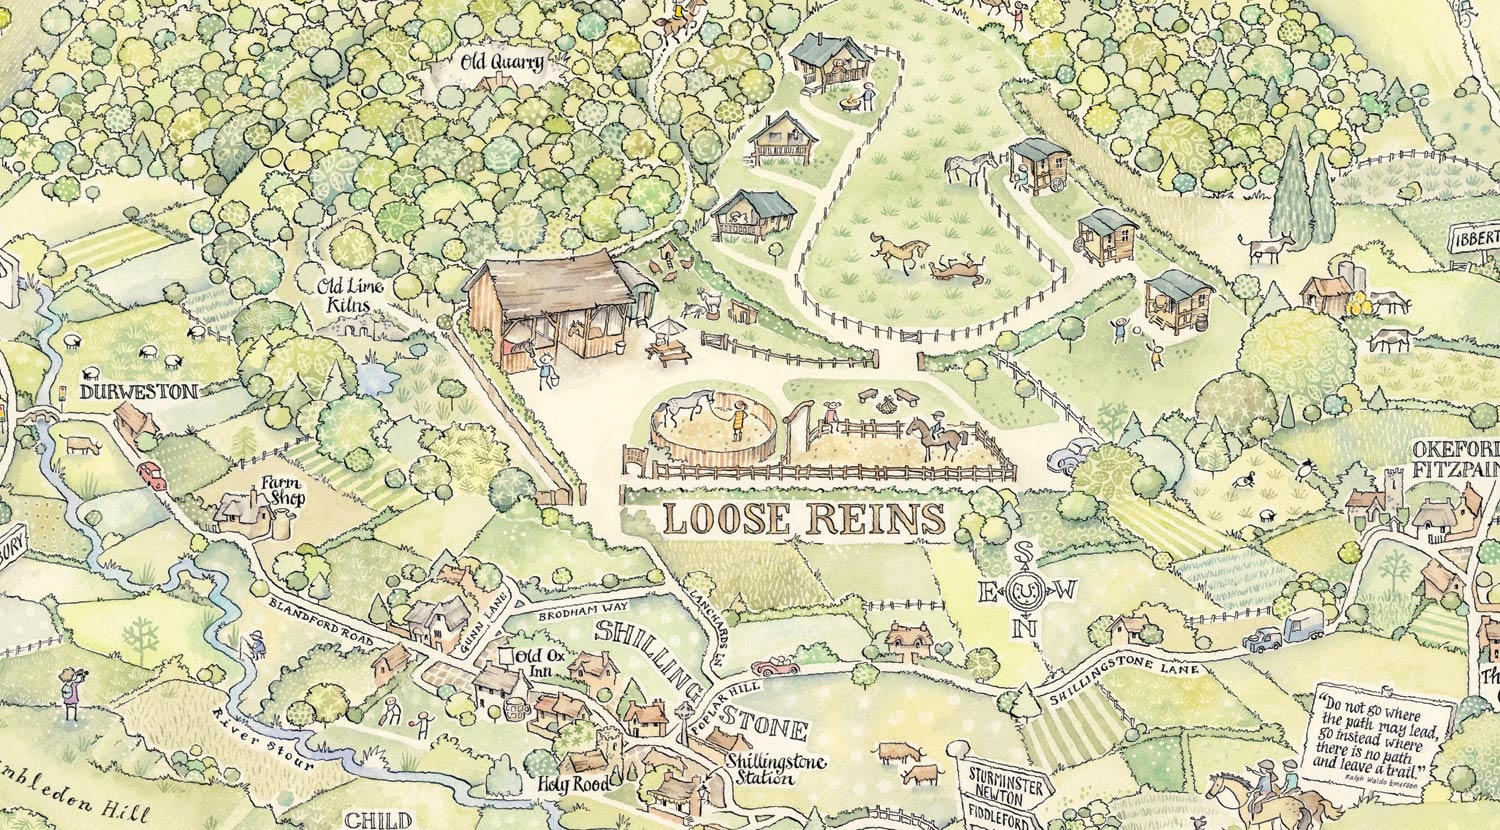 Loose Reins site map